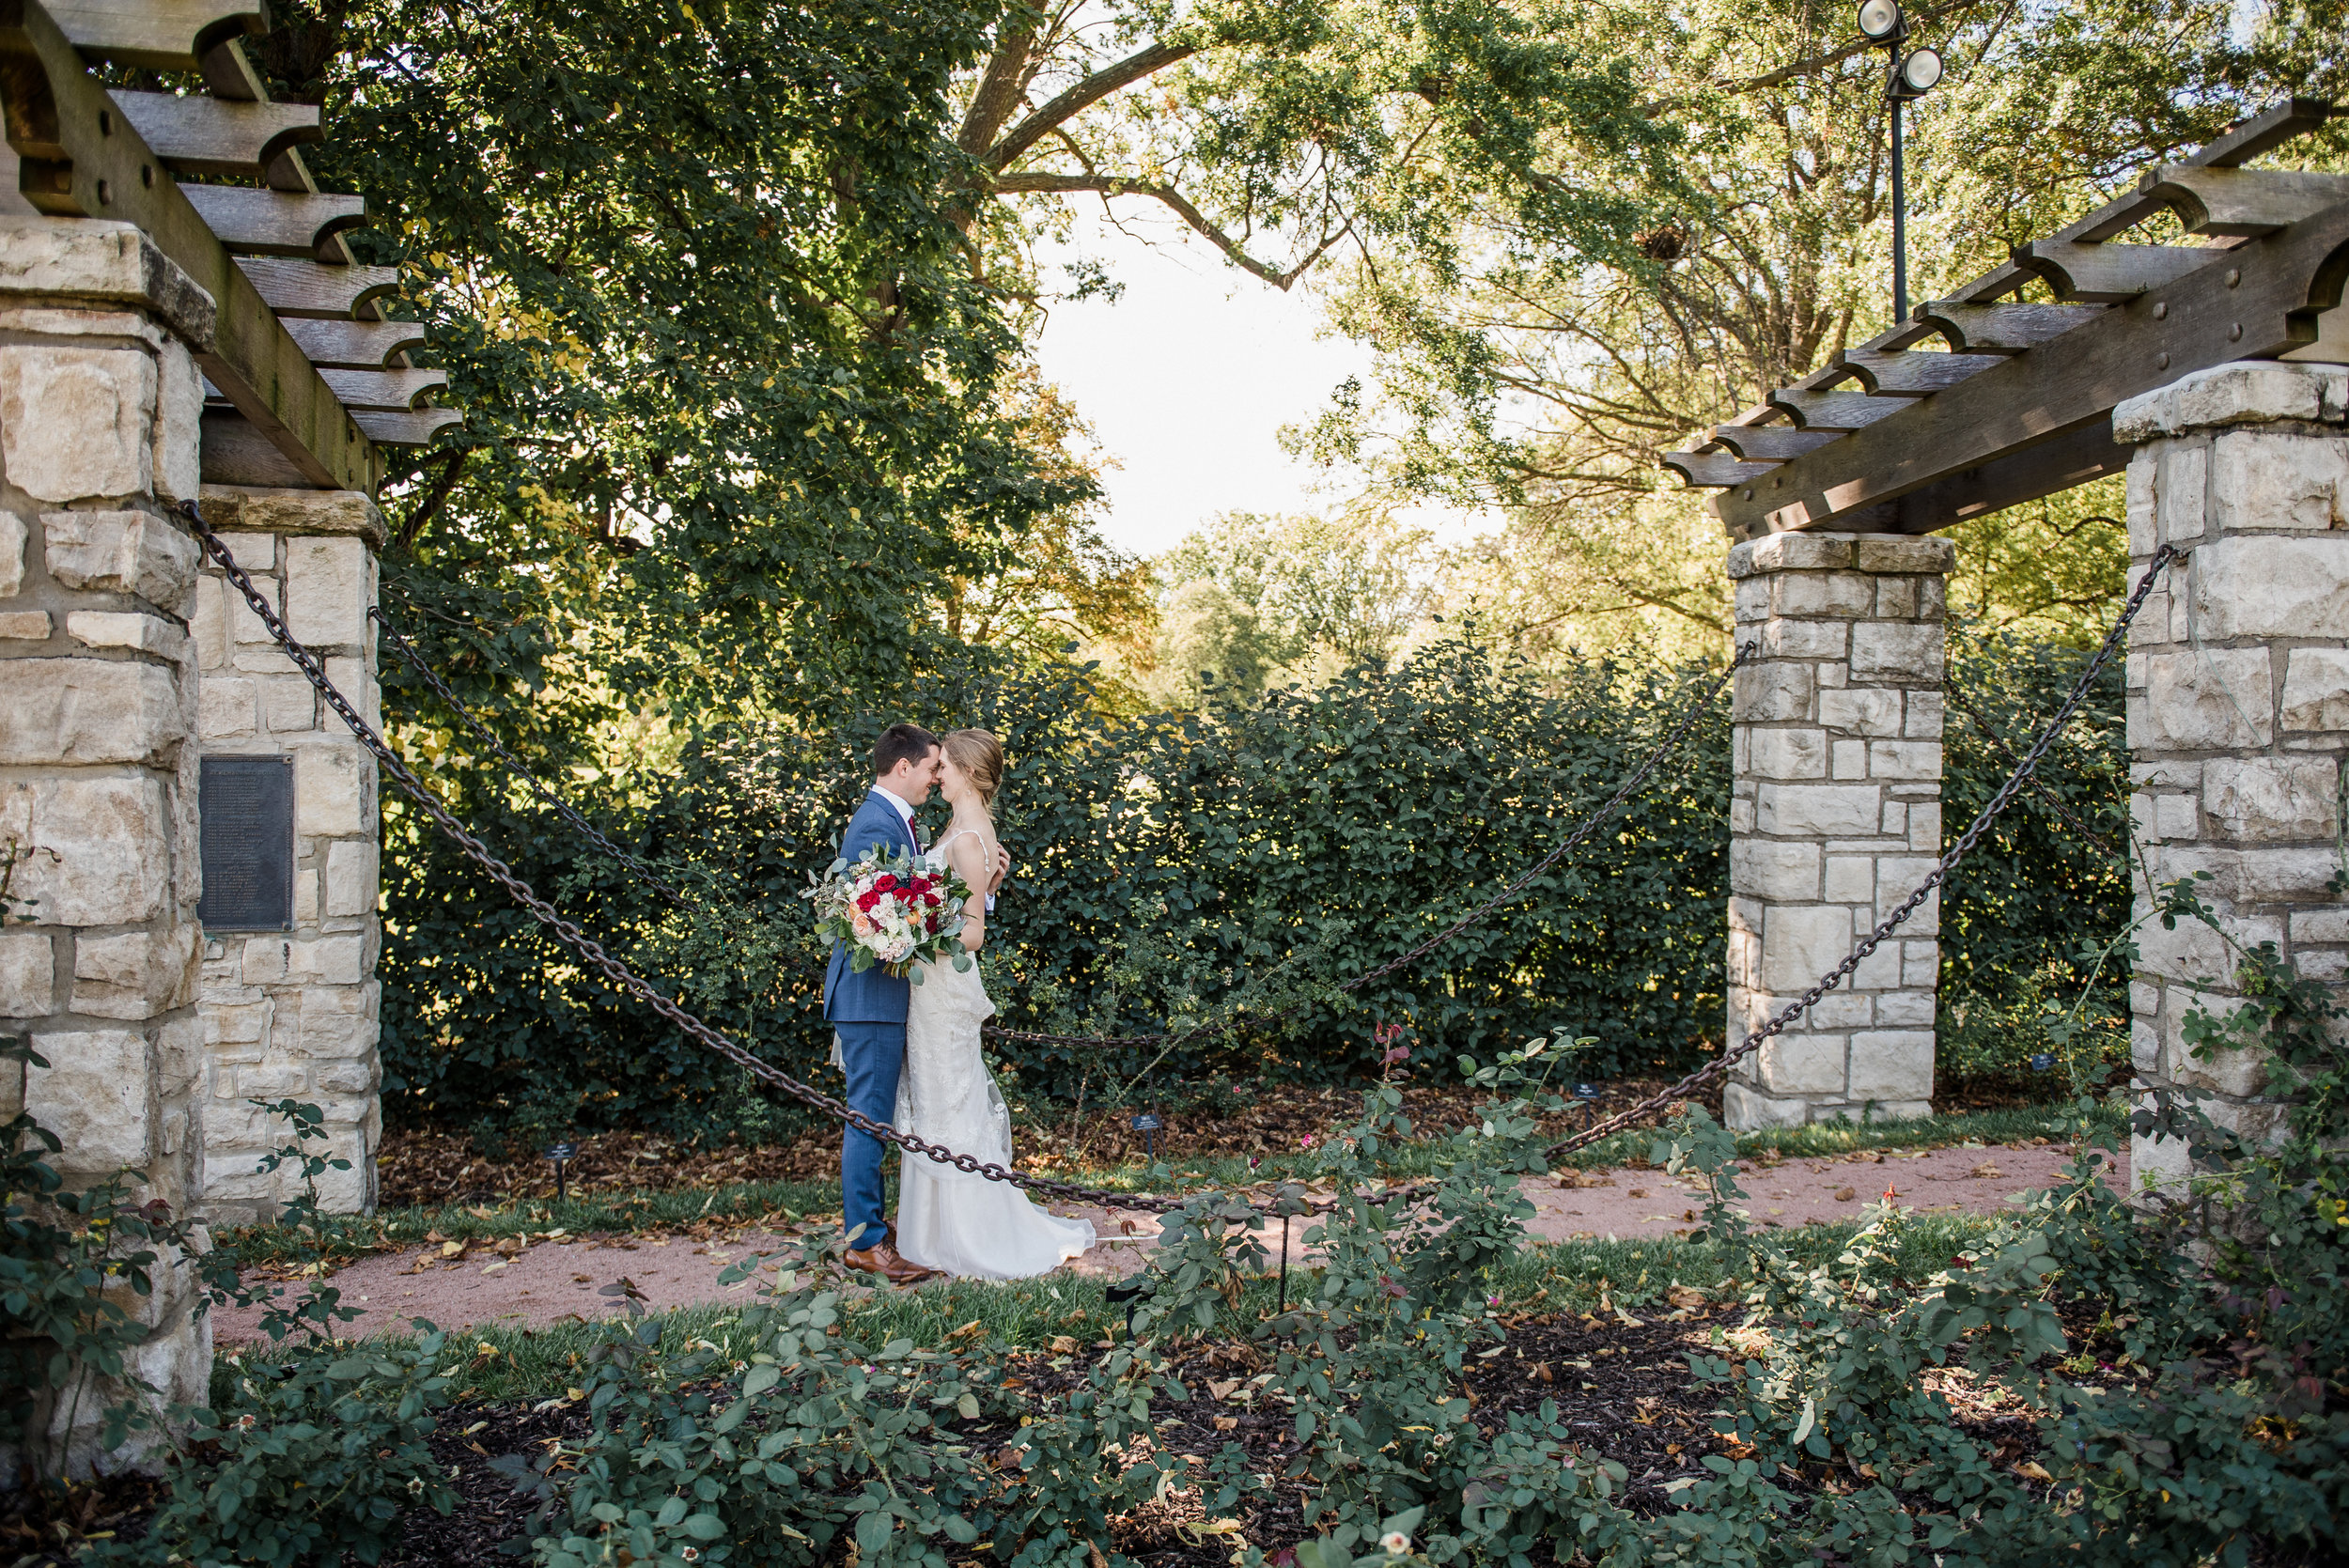 Emily & Scott Wedding | Black Coffee Photo Co 013.jpg